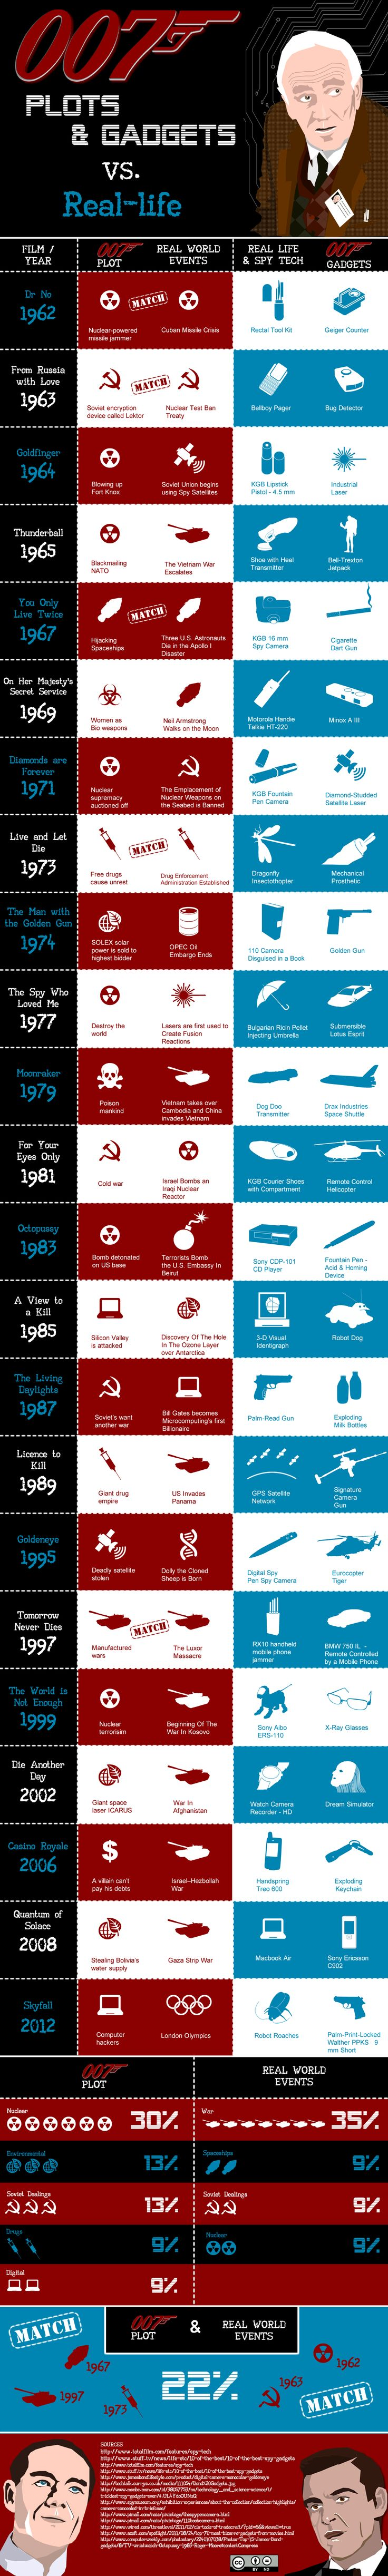 Does James Bond tech ever spill over into the real world, has real tech been better than that of 007? this graphic shows how